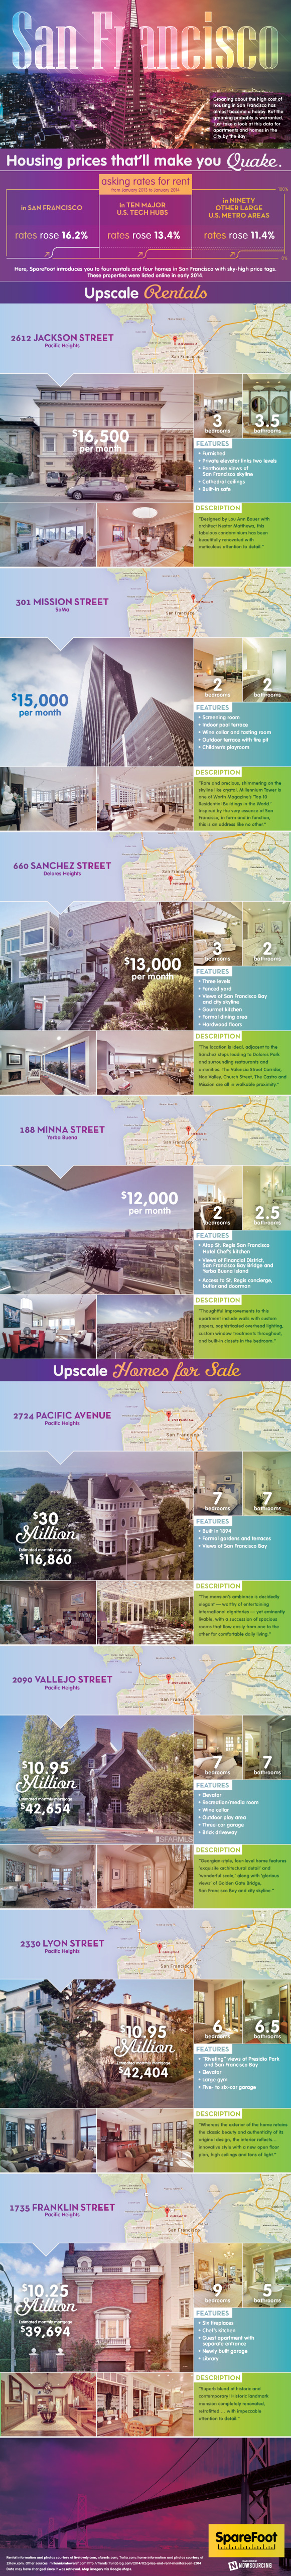 San Francisco: Housing Prices That Will Make You Quake